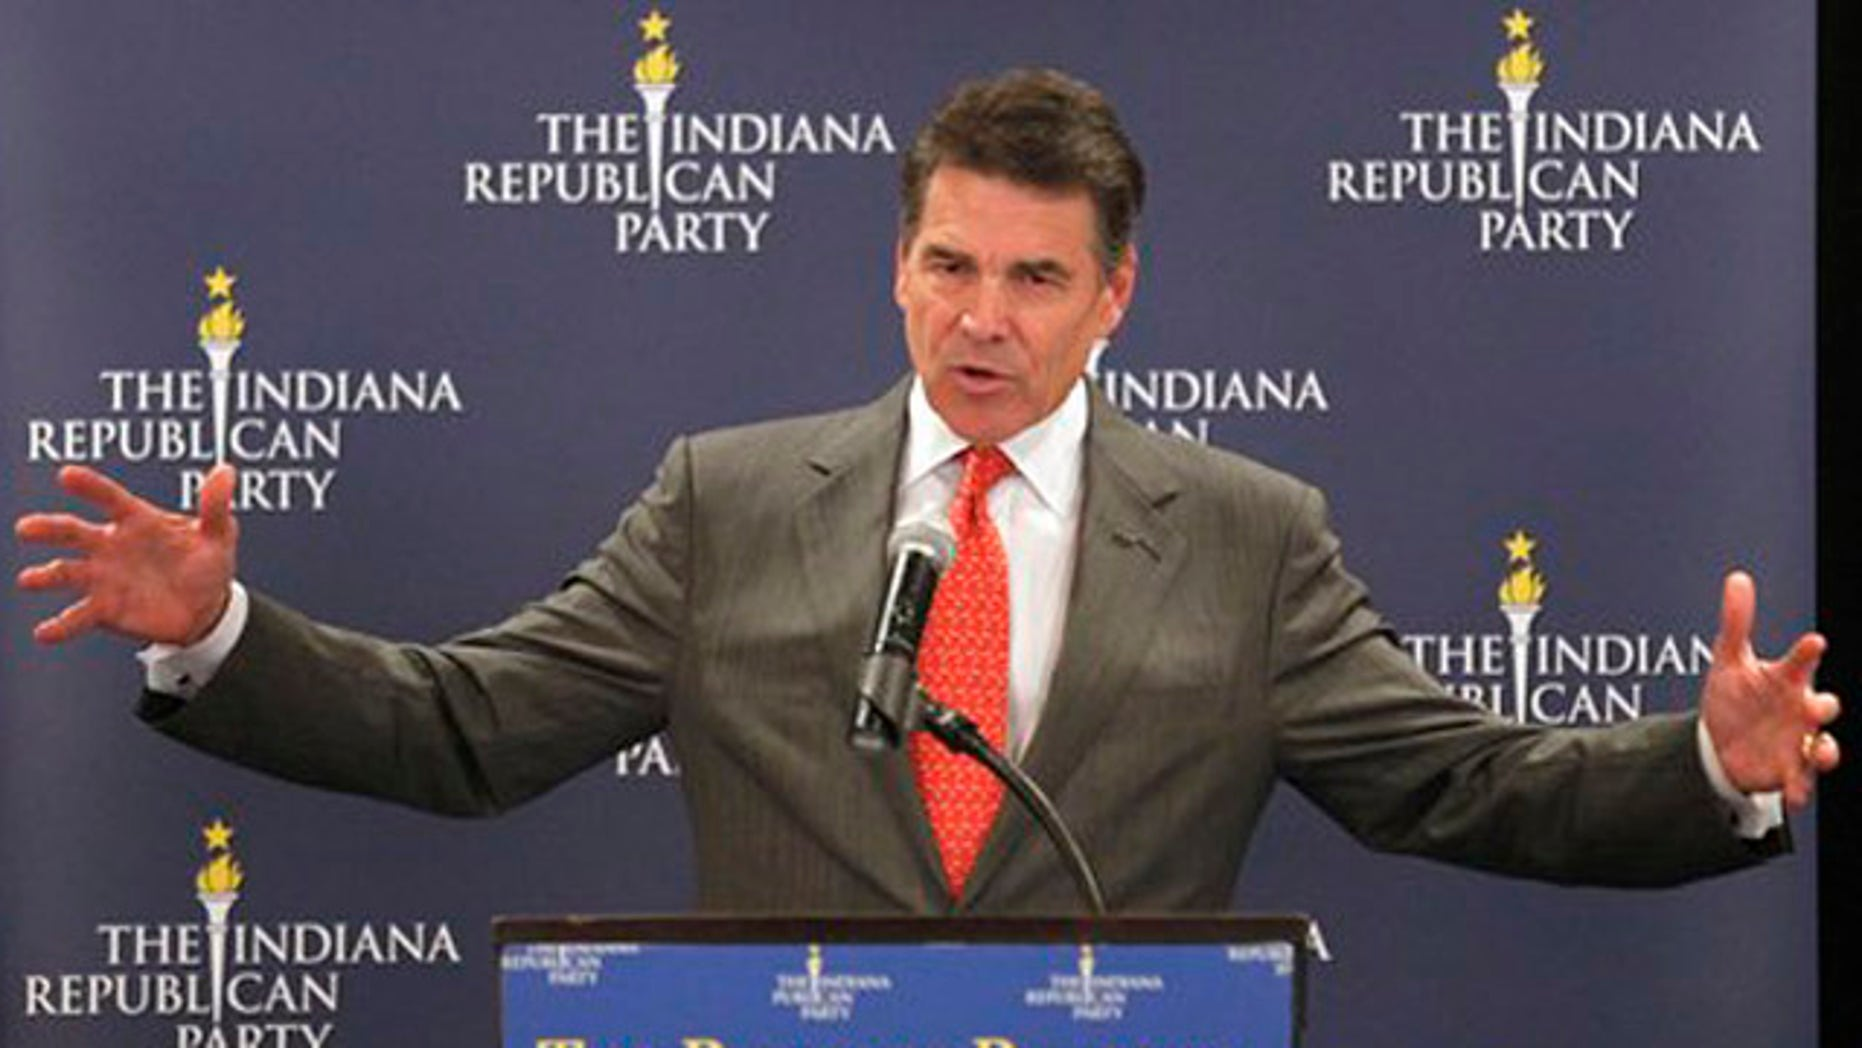 Texas Gov. Rick Perry speaks at a GOP forum in Indianapolis Oct. 12.